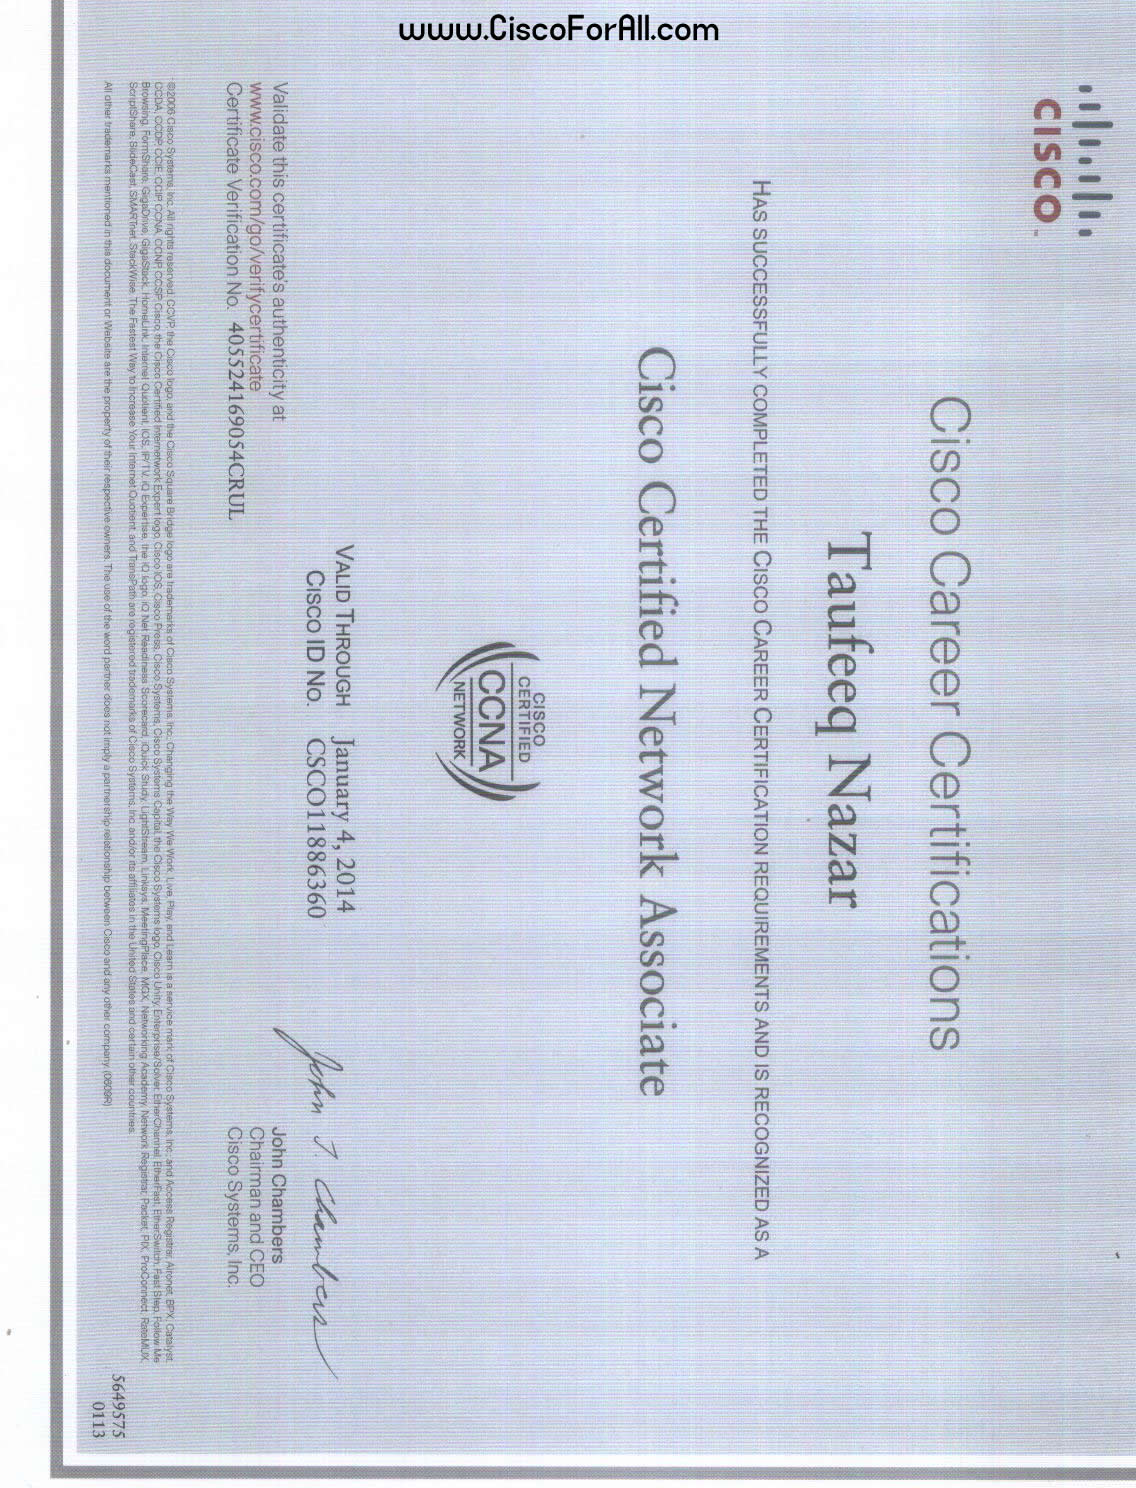 Ccnp entry level ccnp certification begins with cisco certified according to the survey only a cisco certified entry networking technician the computer to be part of a network of other computers 1betcityfo Gallery